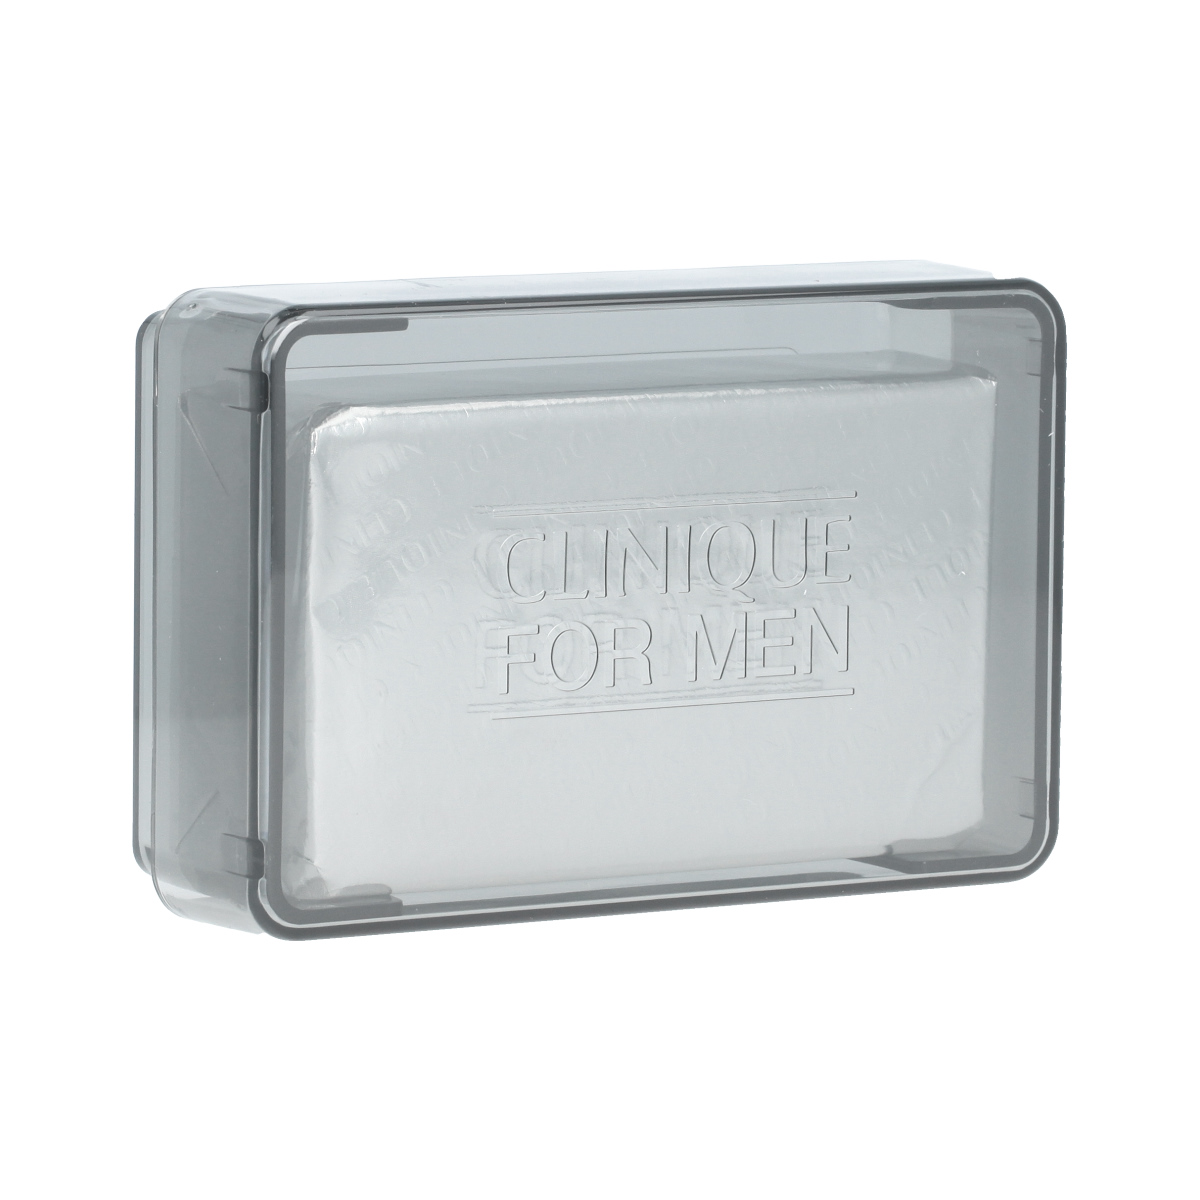 Clinique Skin Supplies For Men Facial Soap With Dish 100 g